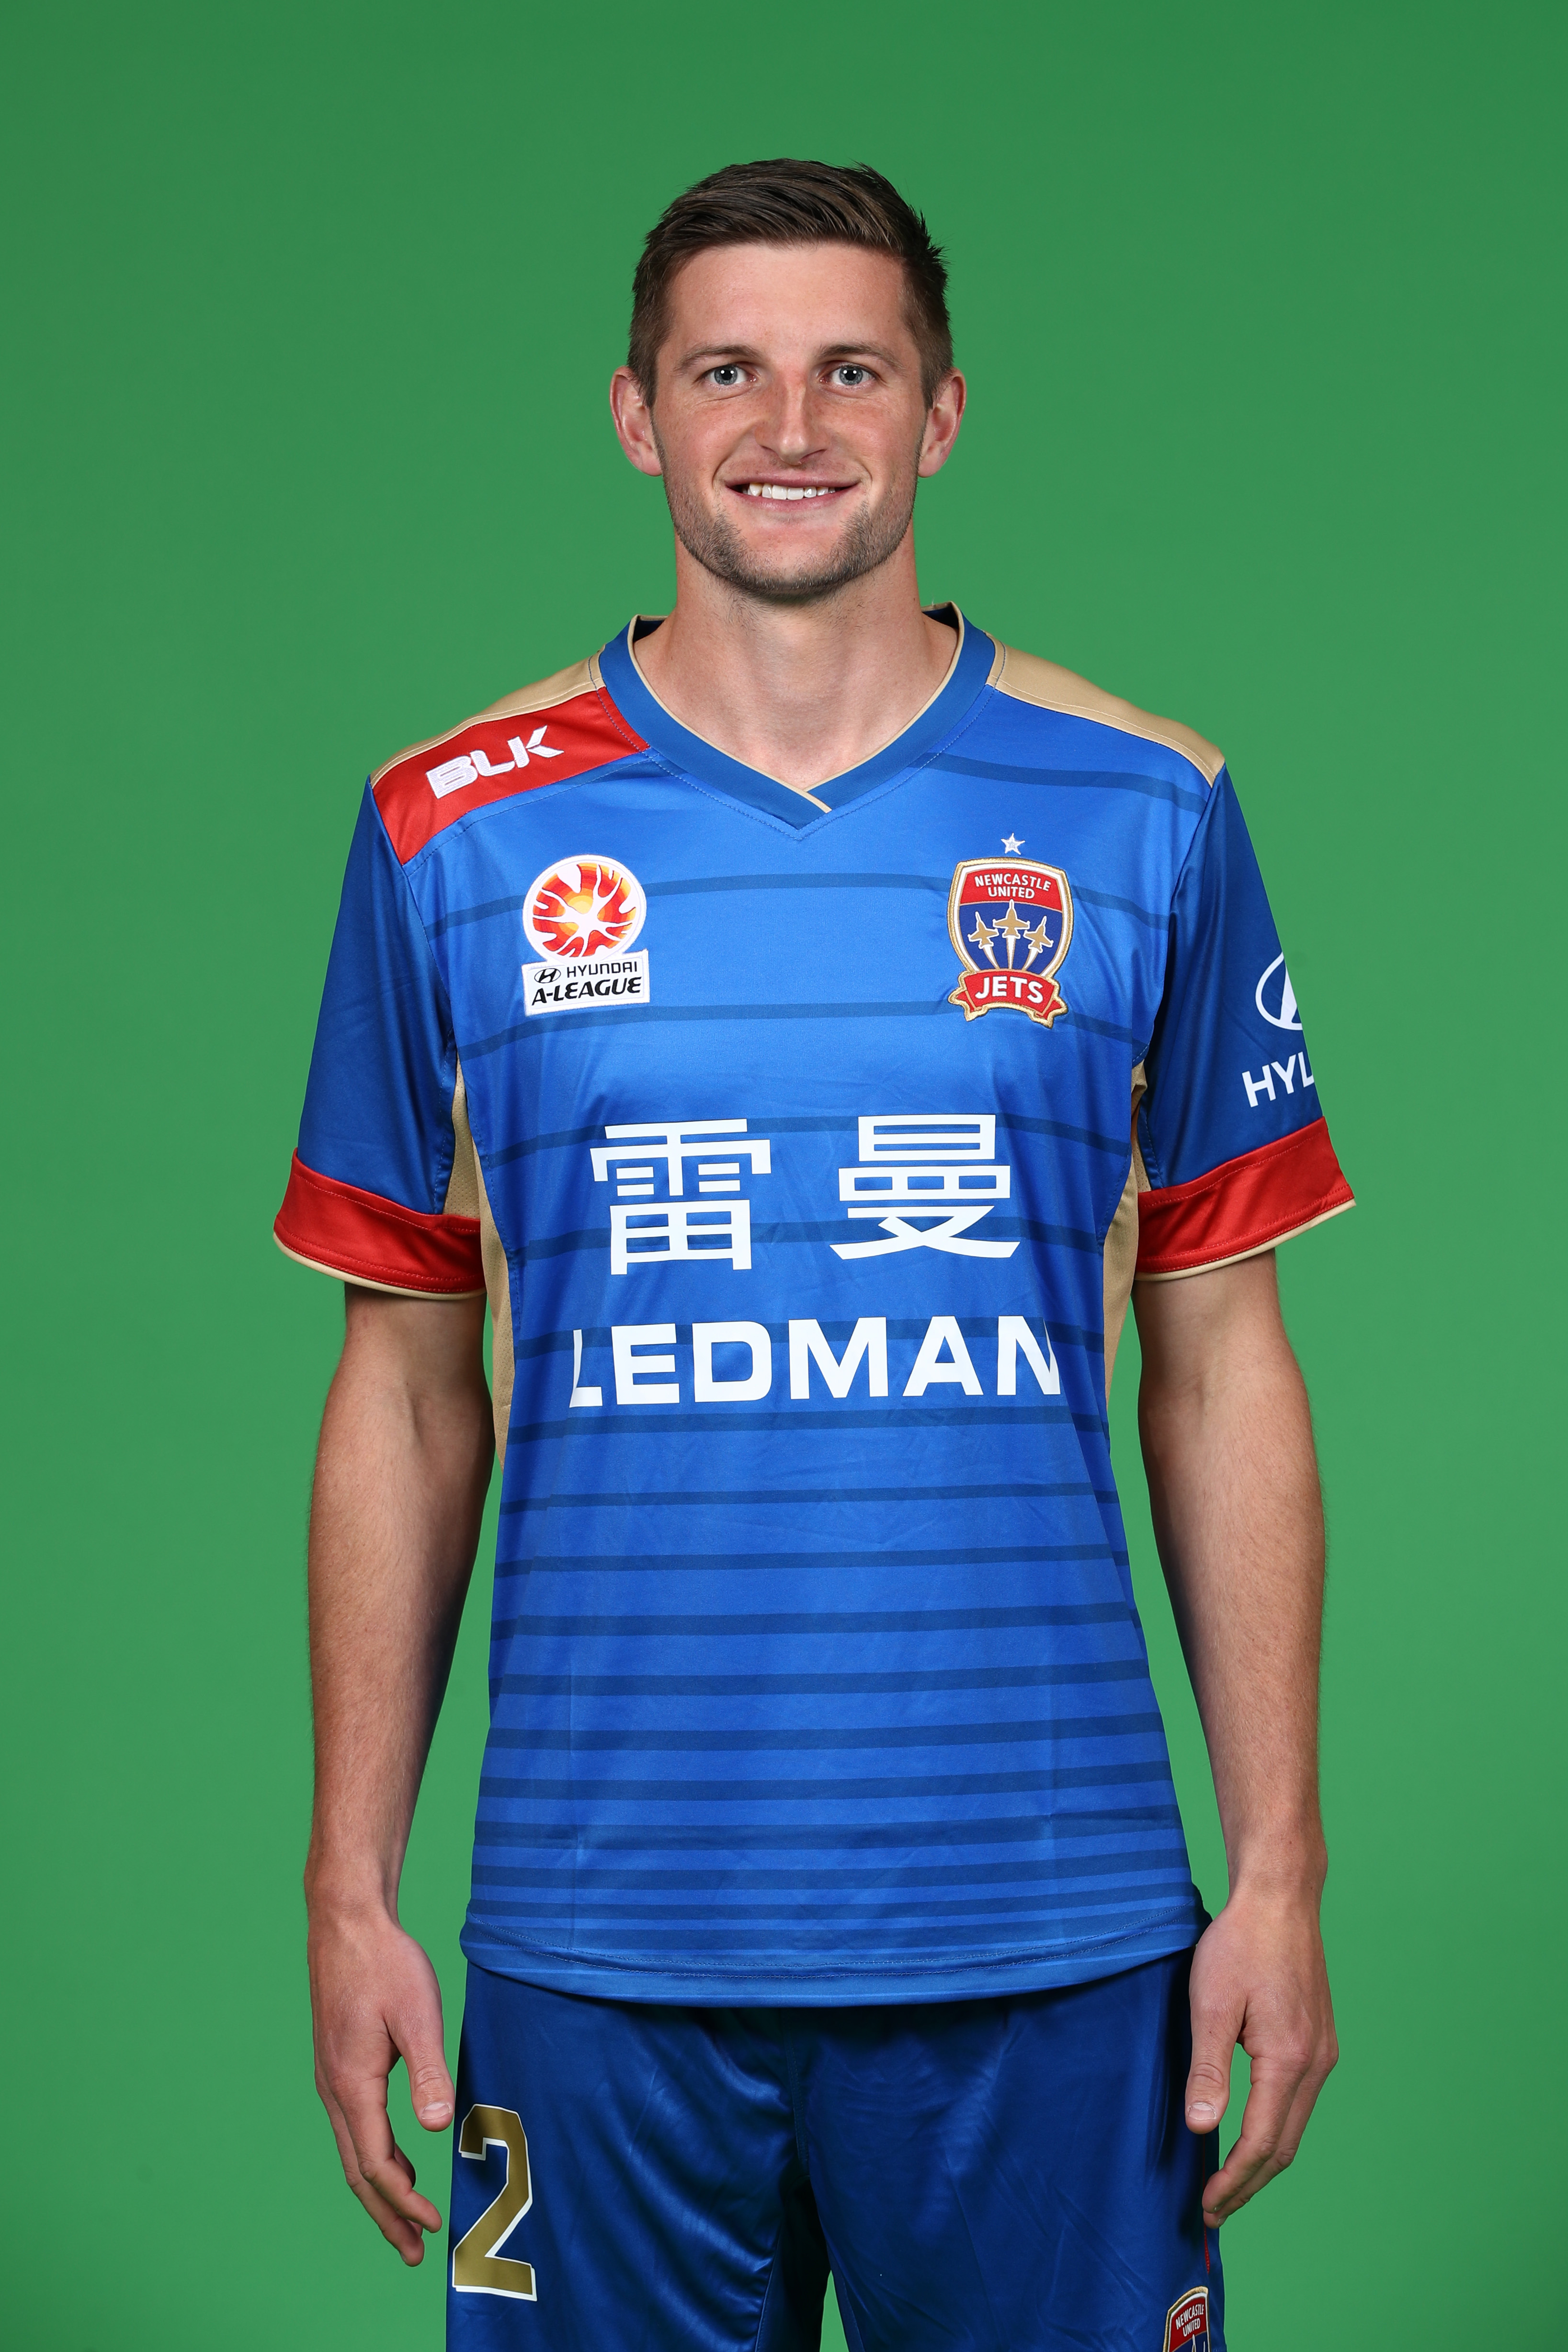 Australian Football player Andy Brennan, who has come out as gay on May 14.